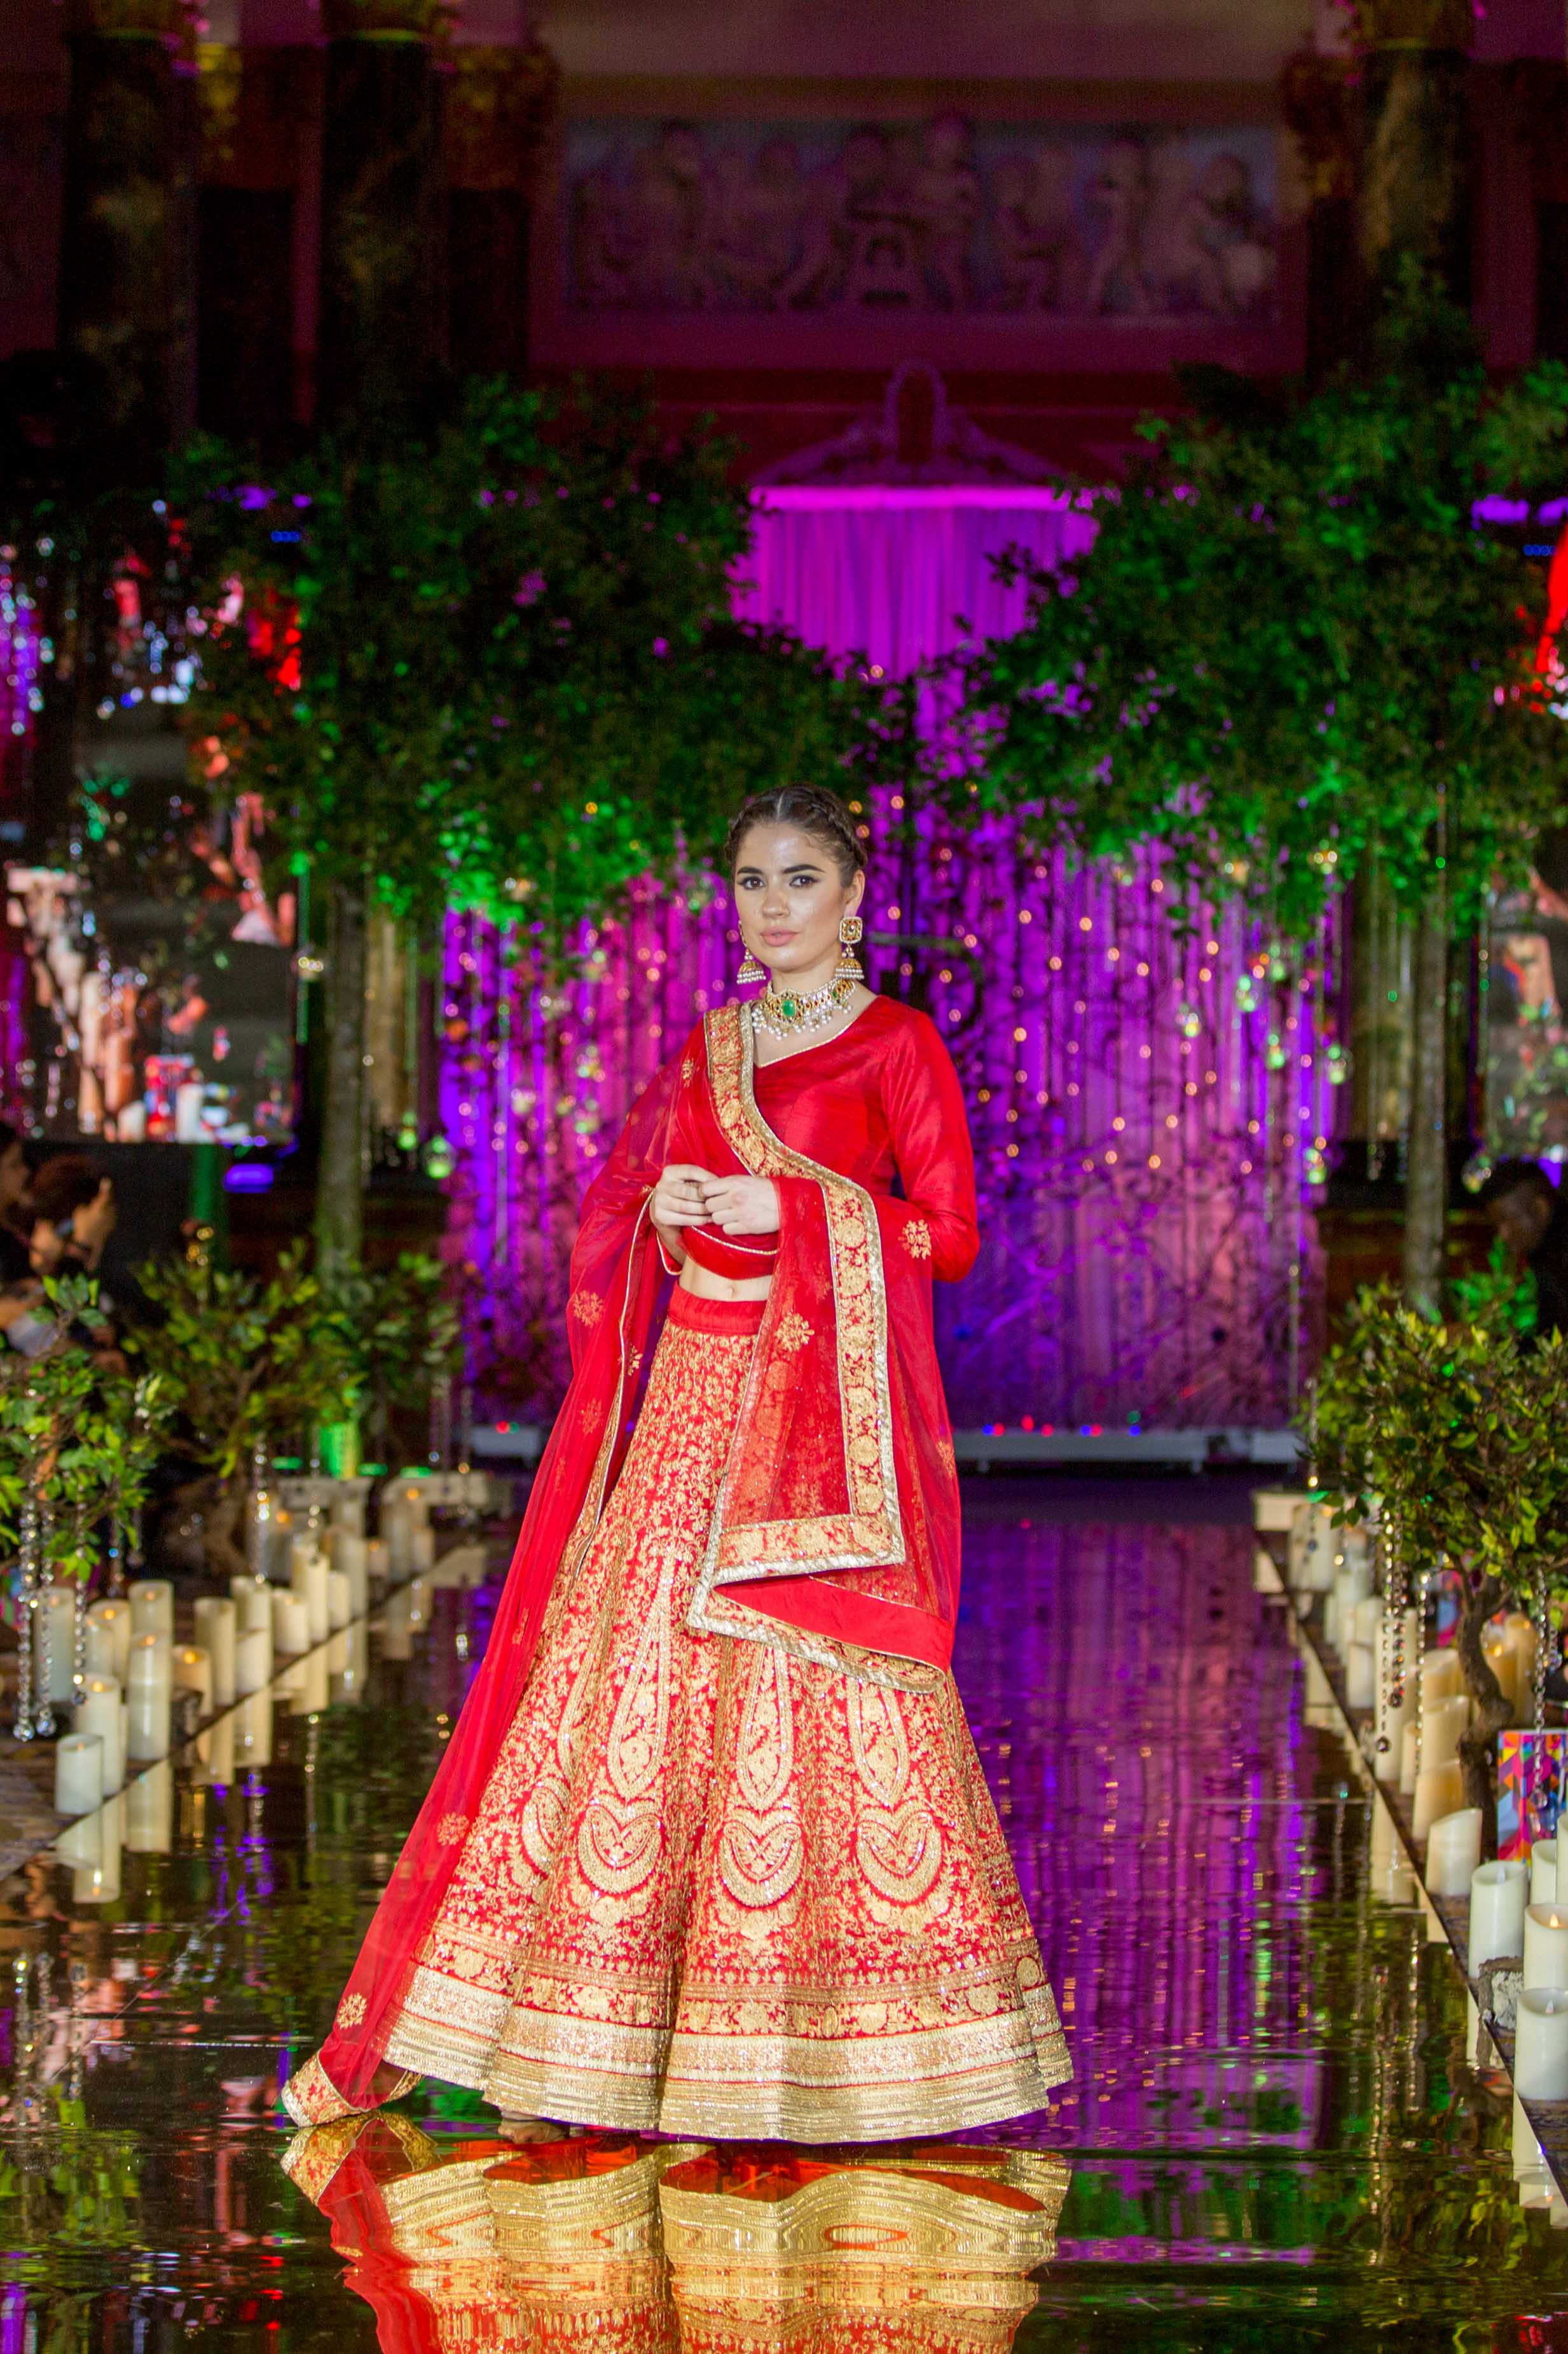 IPLF-IPL-Indian-Pakistani-London-Fashion-London-Week-catwalk-photographer-natalia-smith-photography-Nomi-Ansari-29.jpg